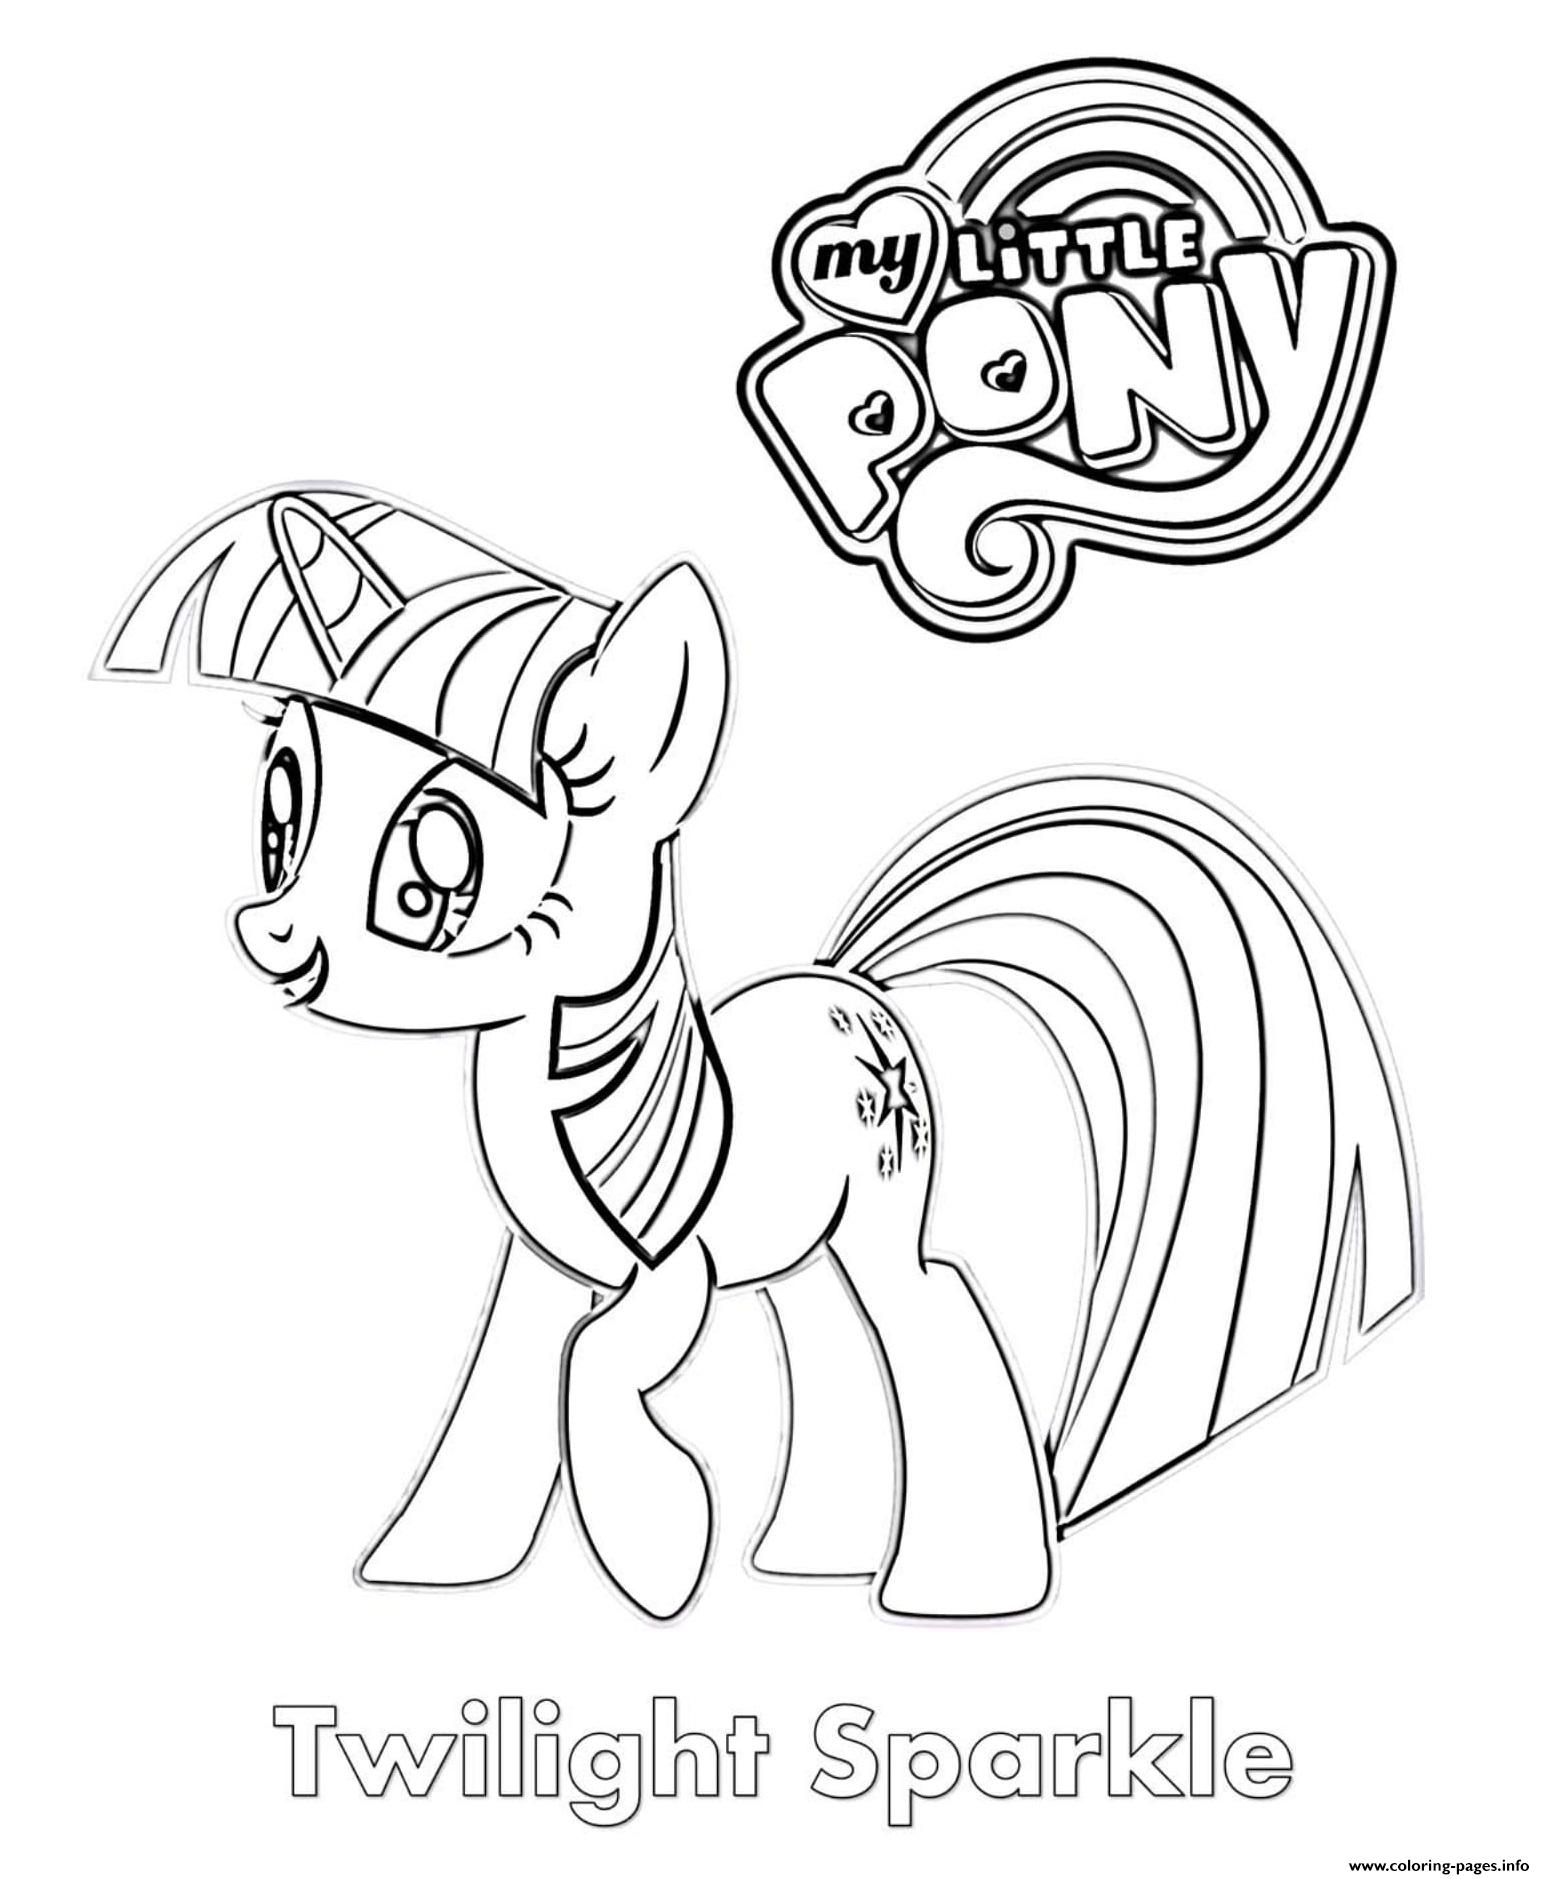 twilight sparkle coloring pages to print twilight sparkle coloring pages to download and print for free to coloring twilight print pages sparkle